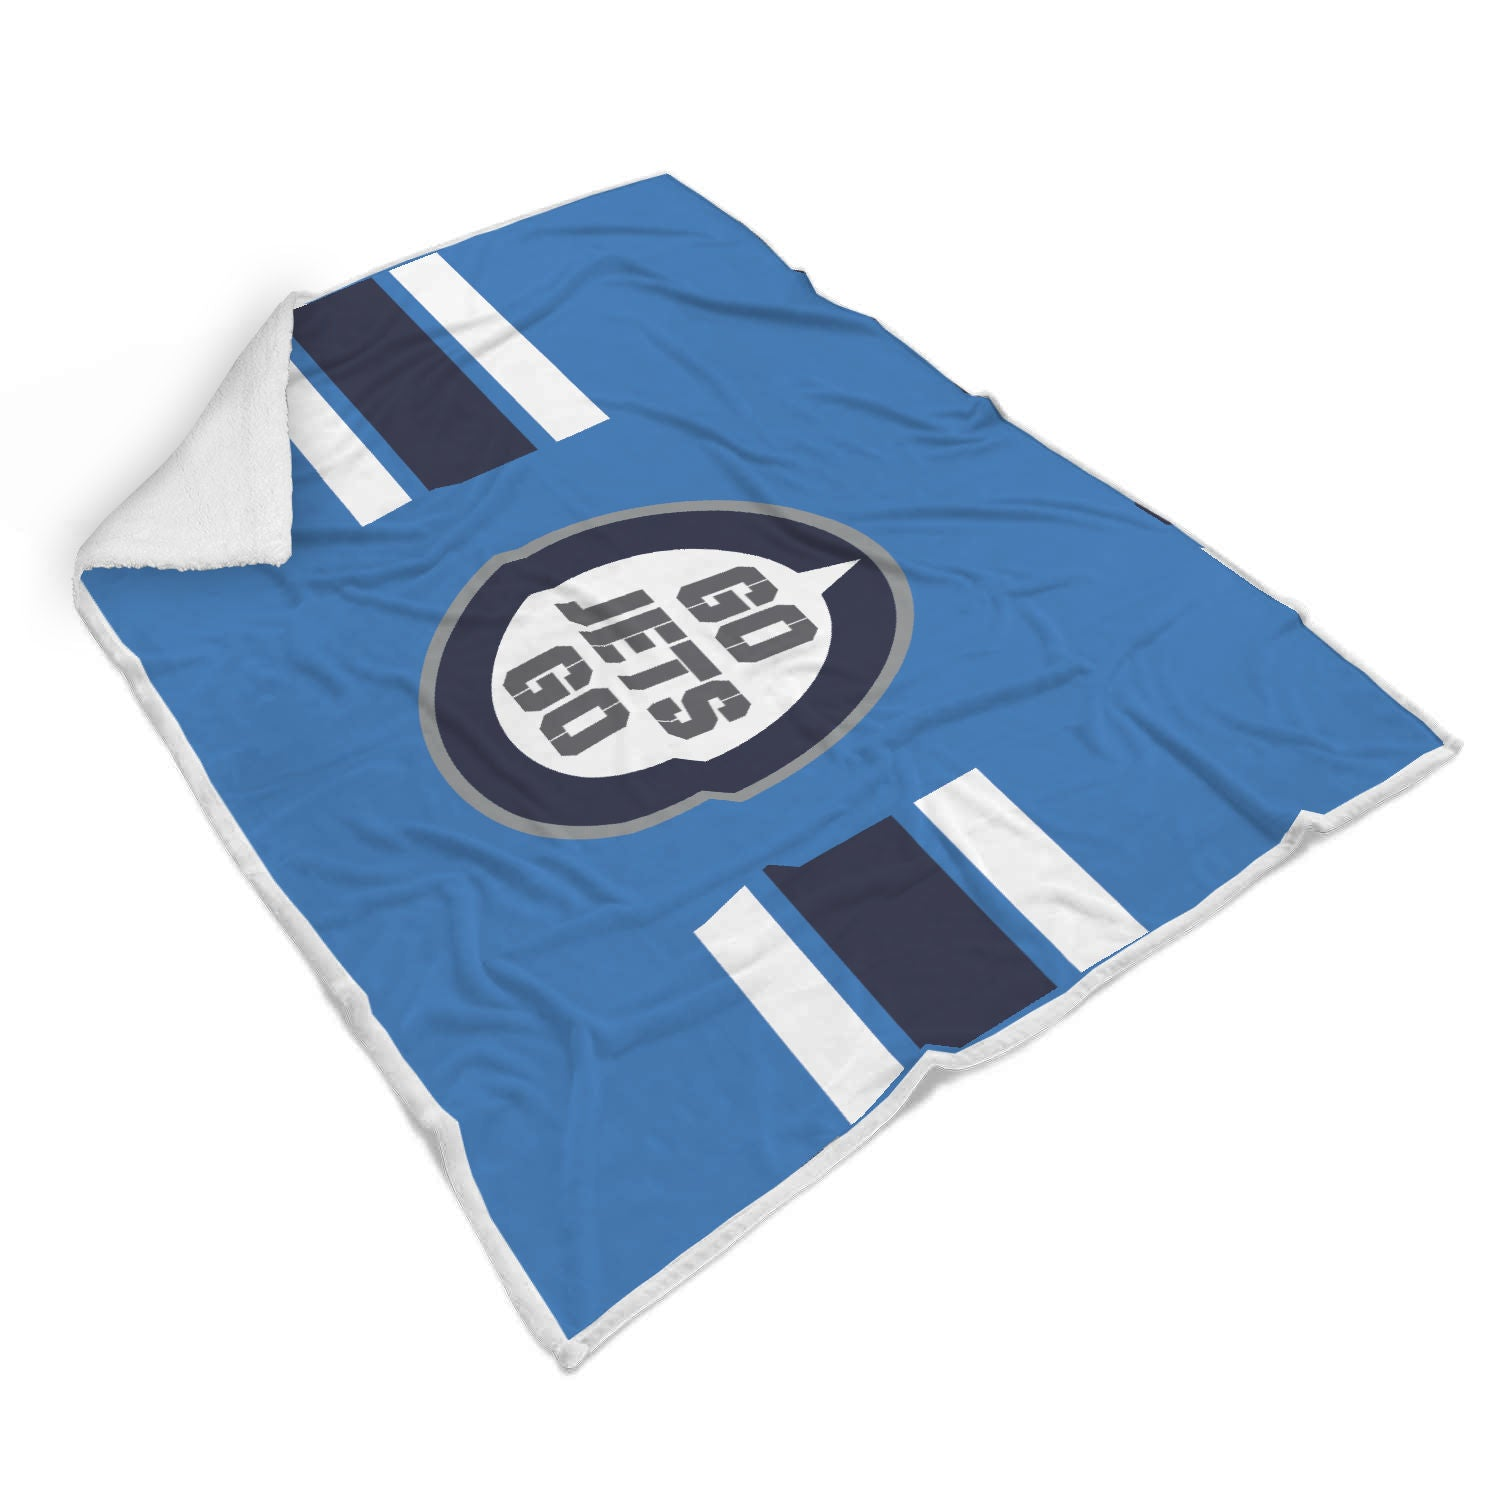 Custom Designed Premium Blanket For WJ fans - Blindly Shop